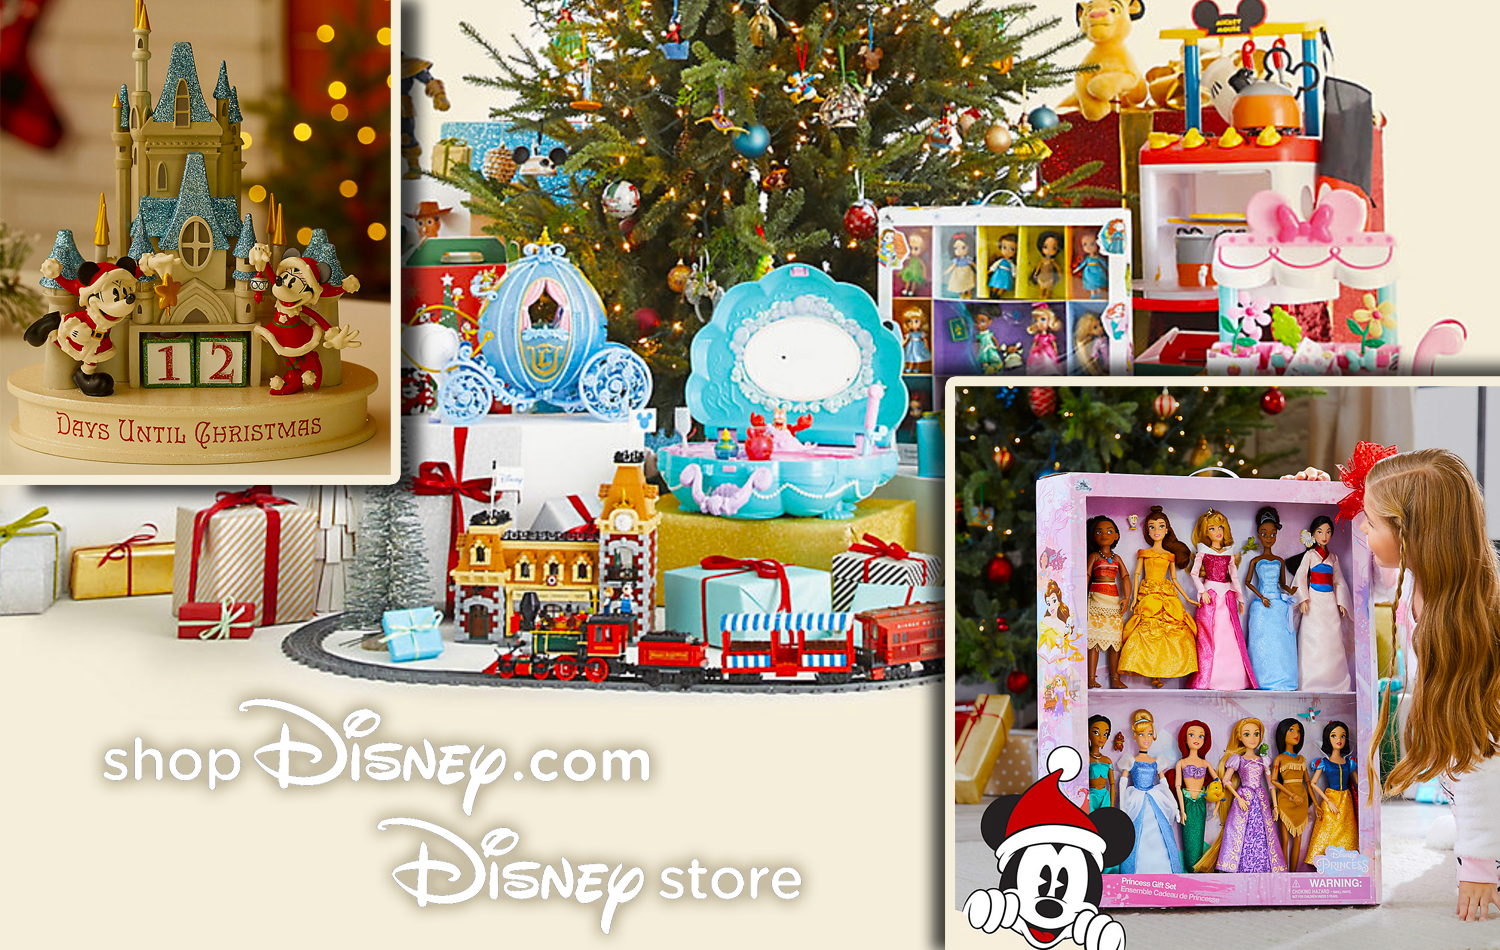 shopDisney.com and Disney store Reveal the Top Holiday Toys for the 2019 Holiday Season